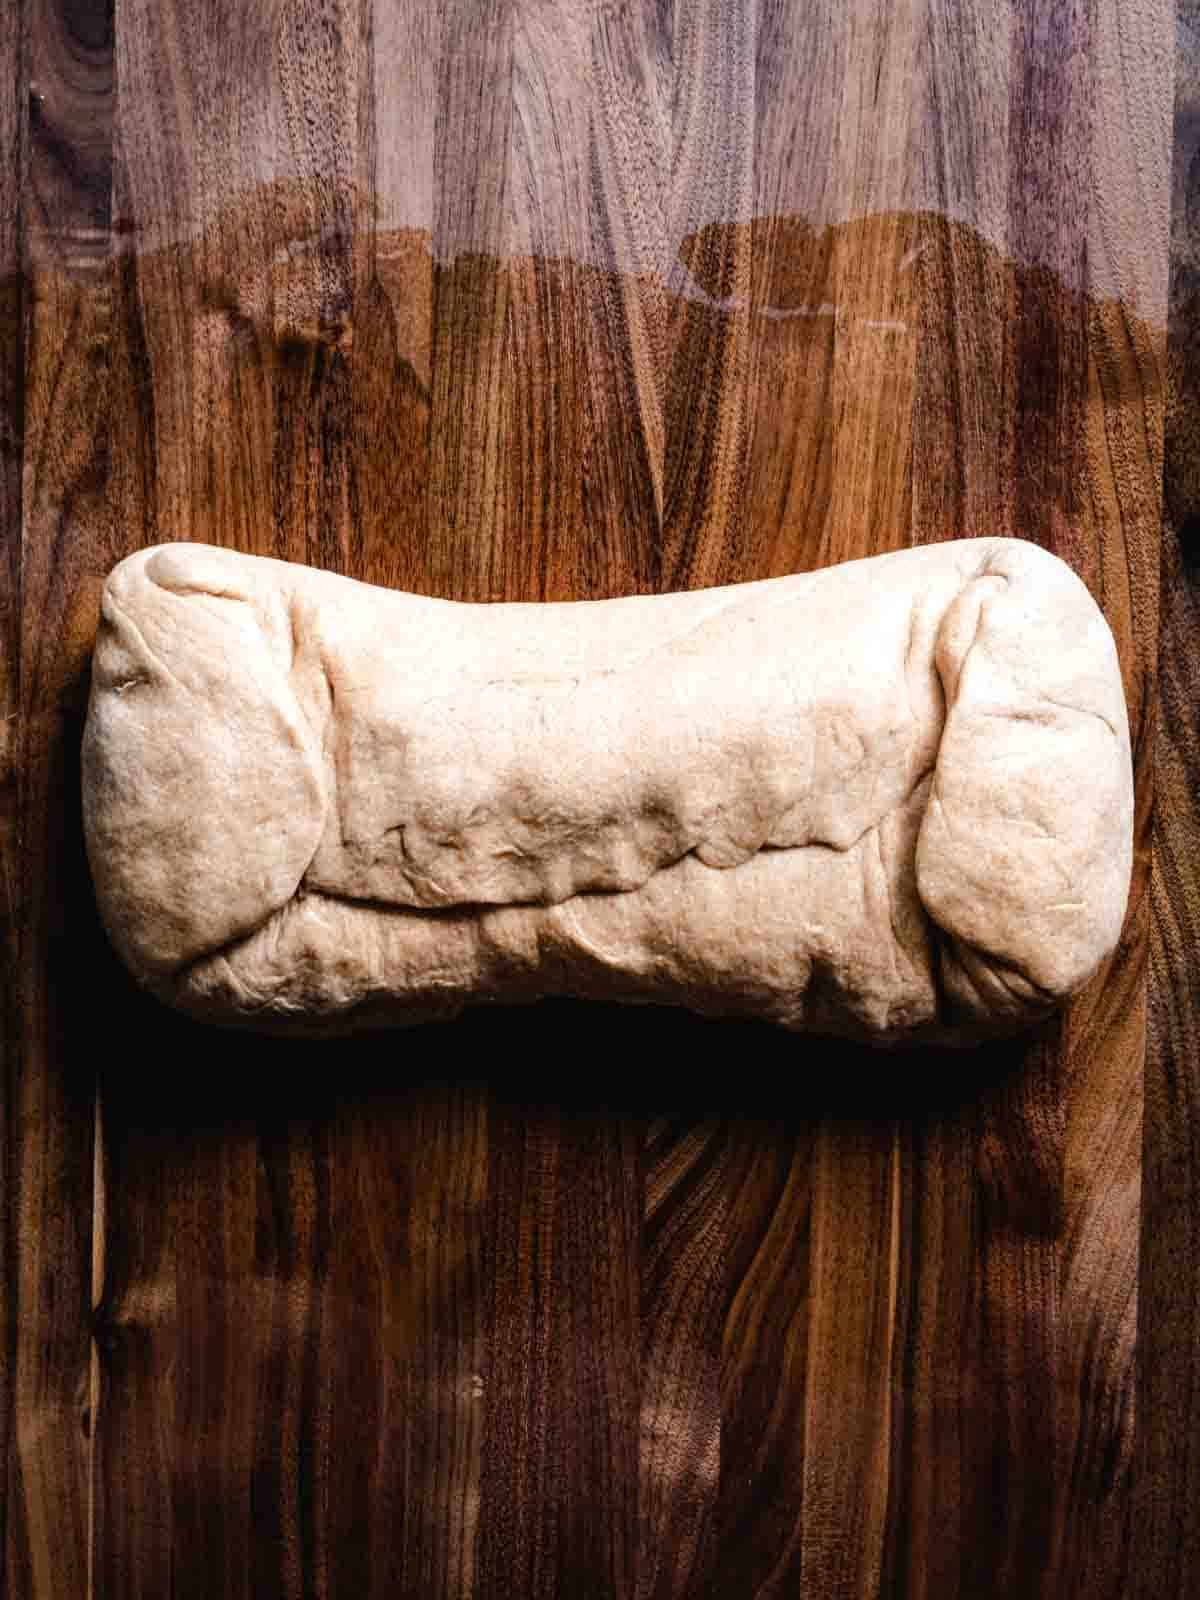 bread dough formed into a loaf